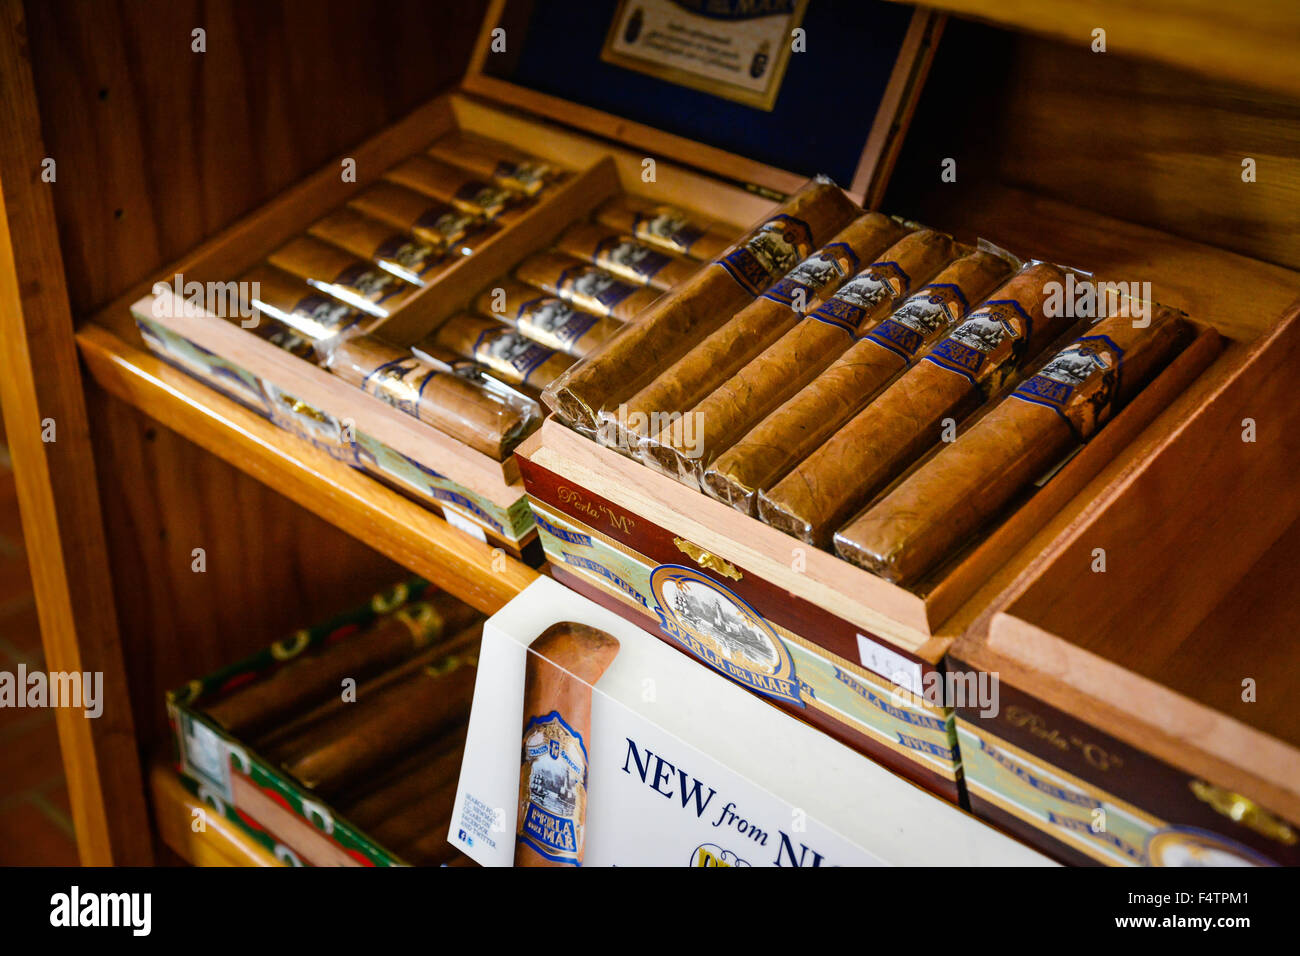 Assorted handmade cigars on display in store in Ybor City